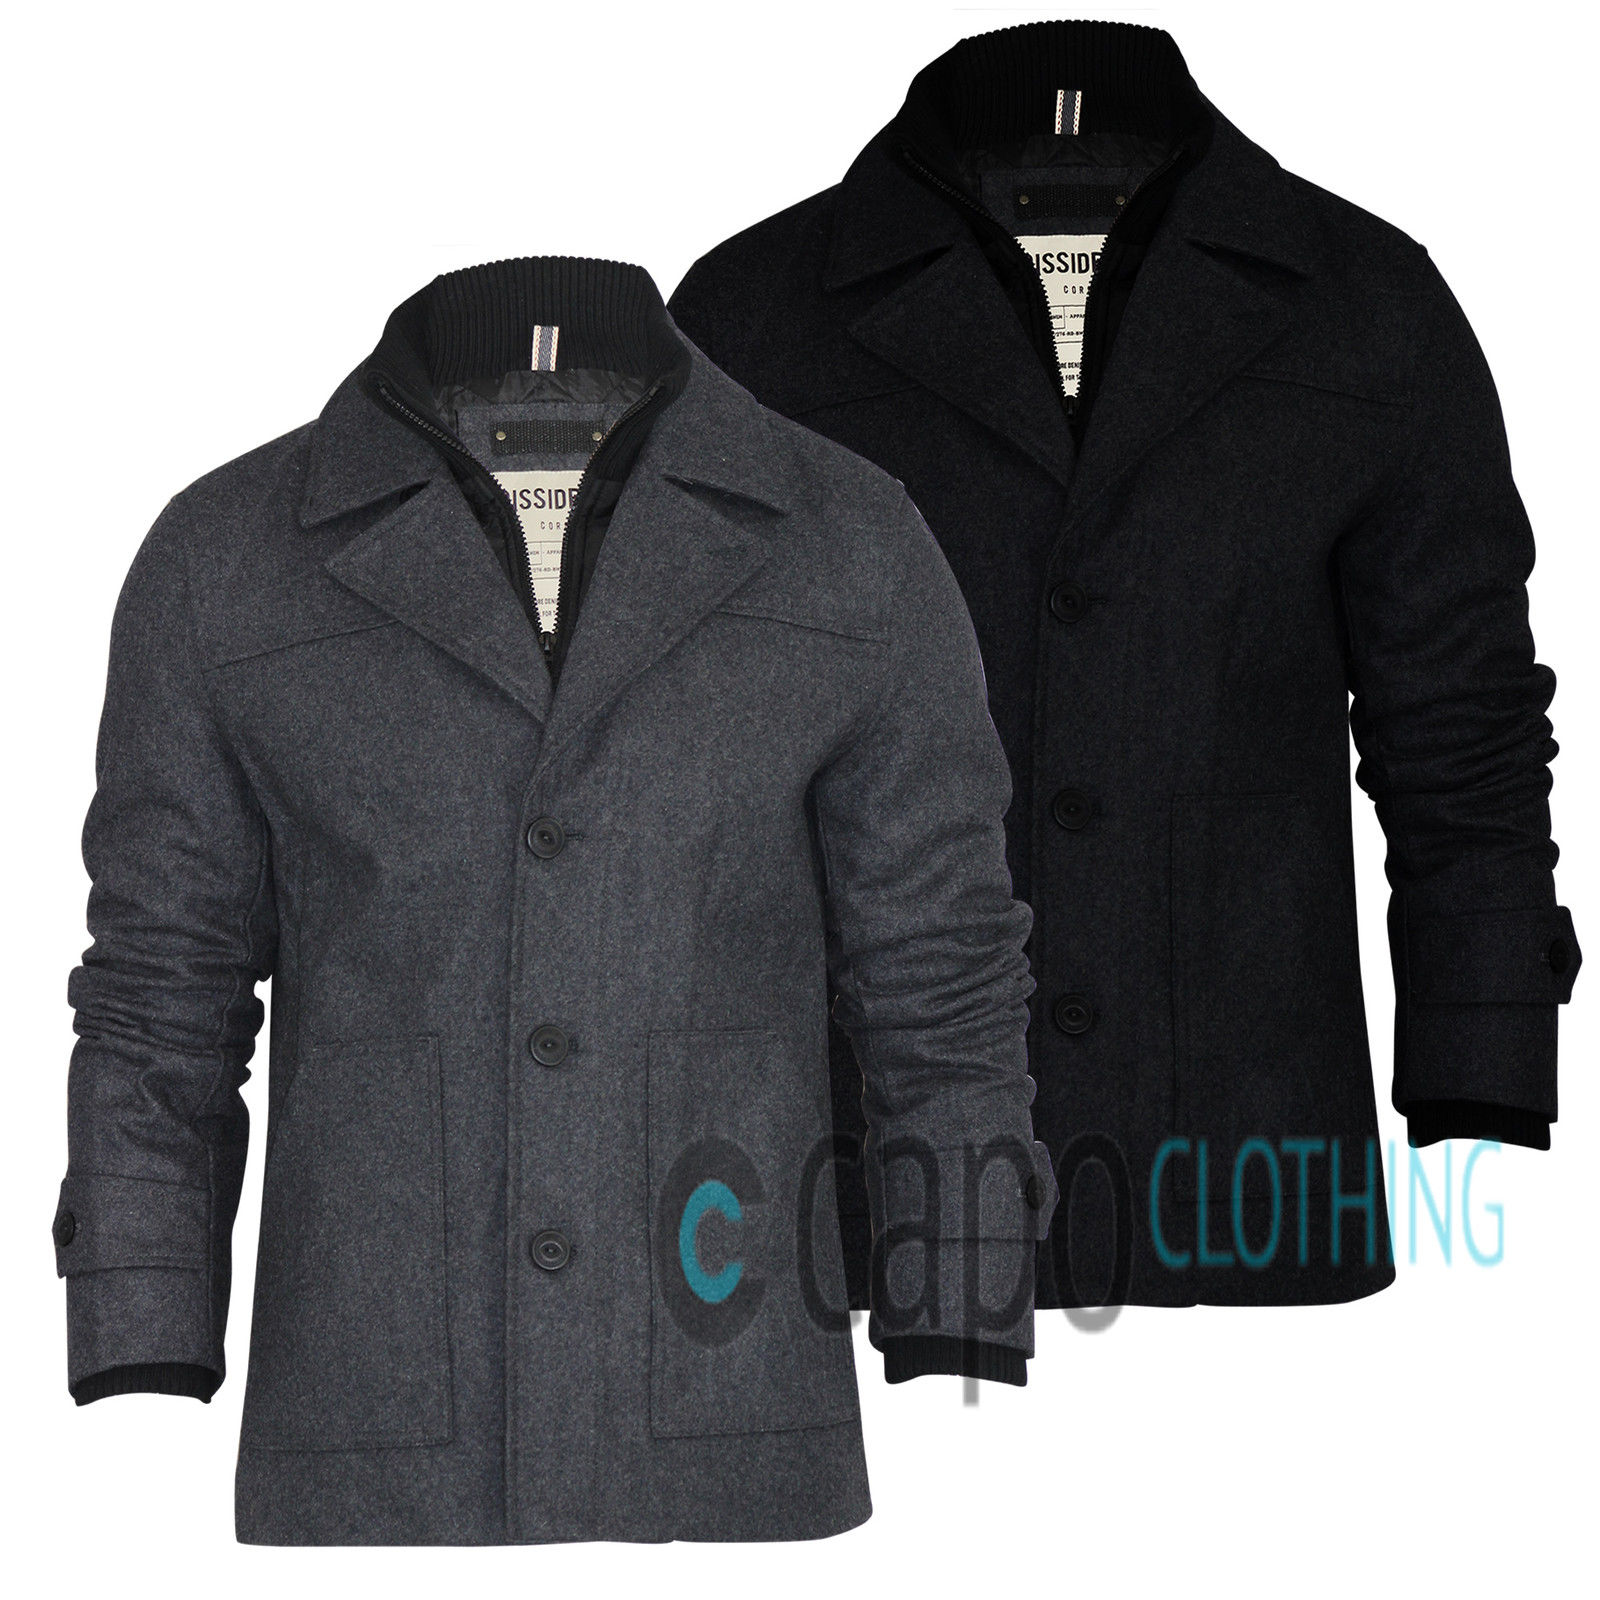 Wholesale cheap trench coats gender -casual double breasted coat men british style lapel collar slim fit long trench coat mens wool pea coat manteau homme free shipping from Chinese men's trench coats supplier - billshuiping on jomp16.tk